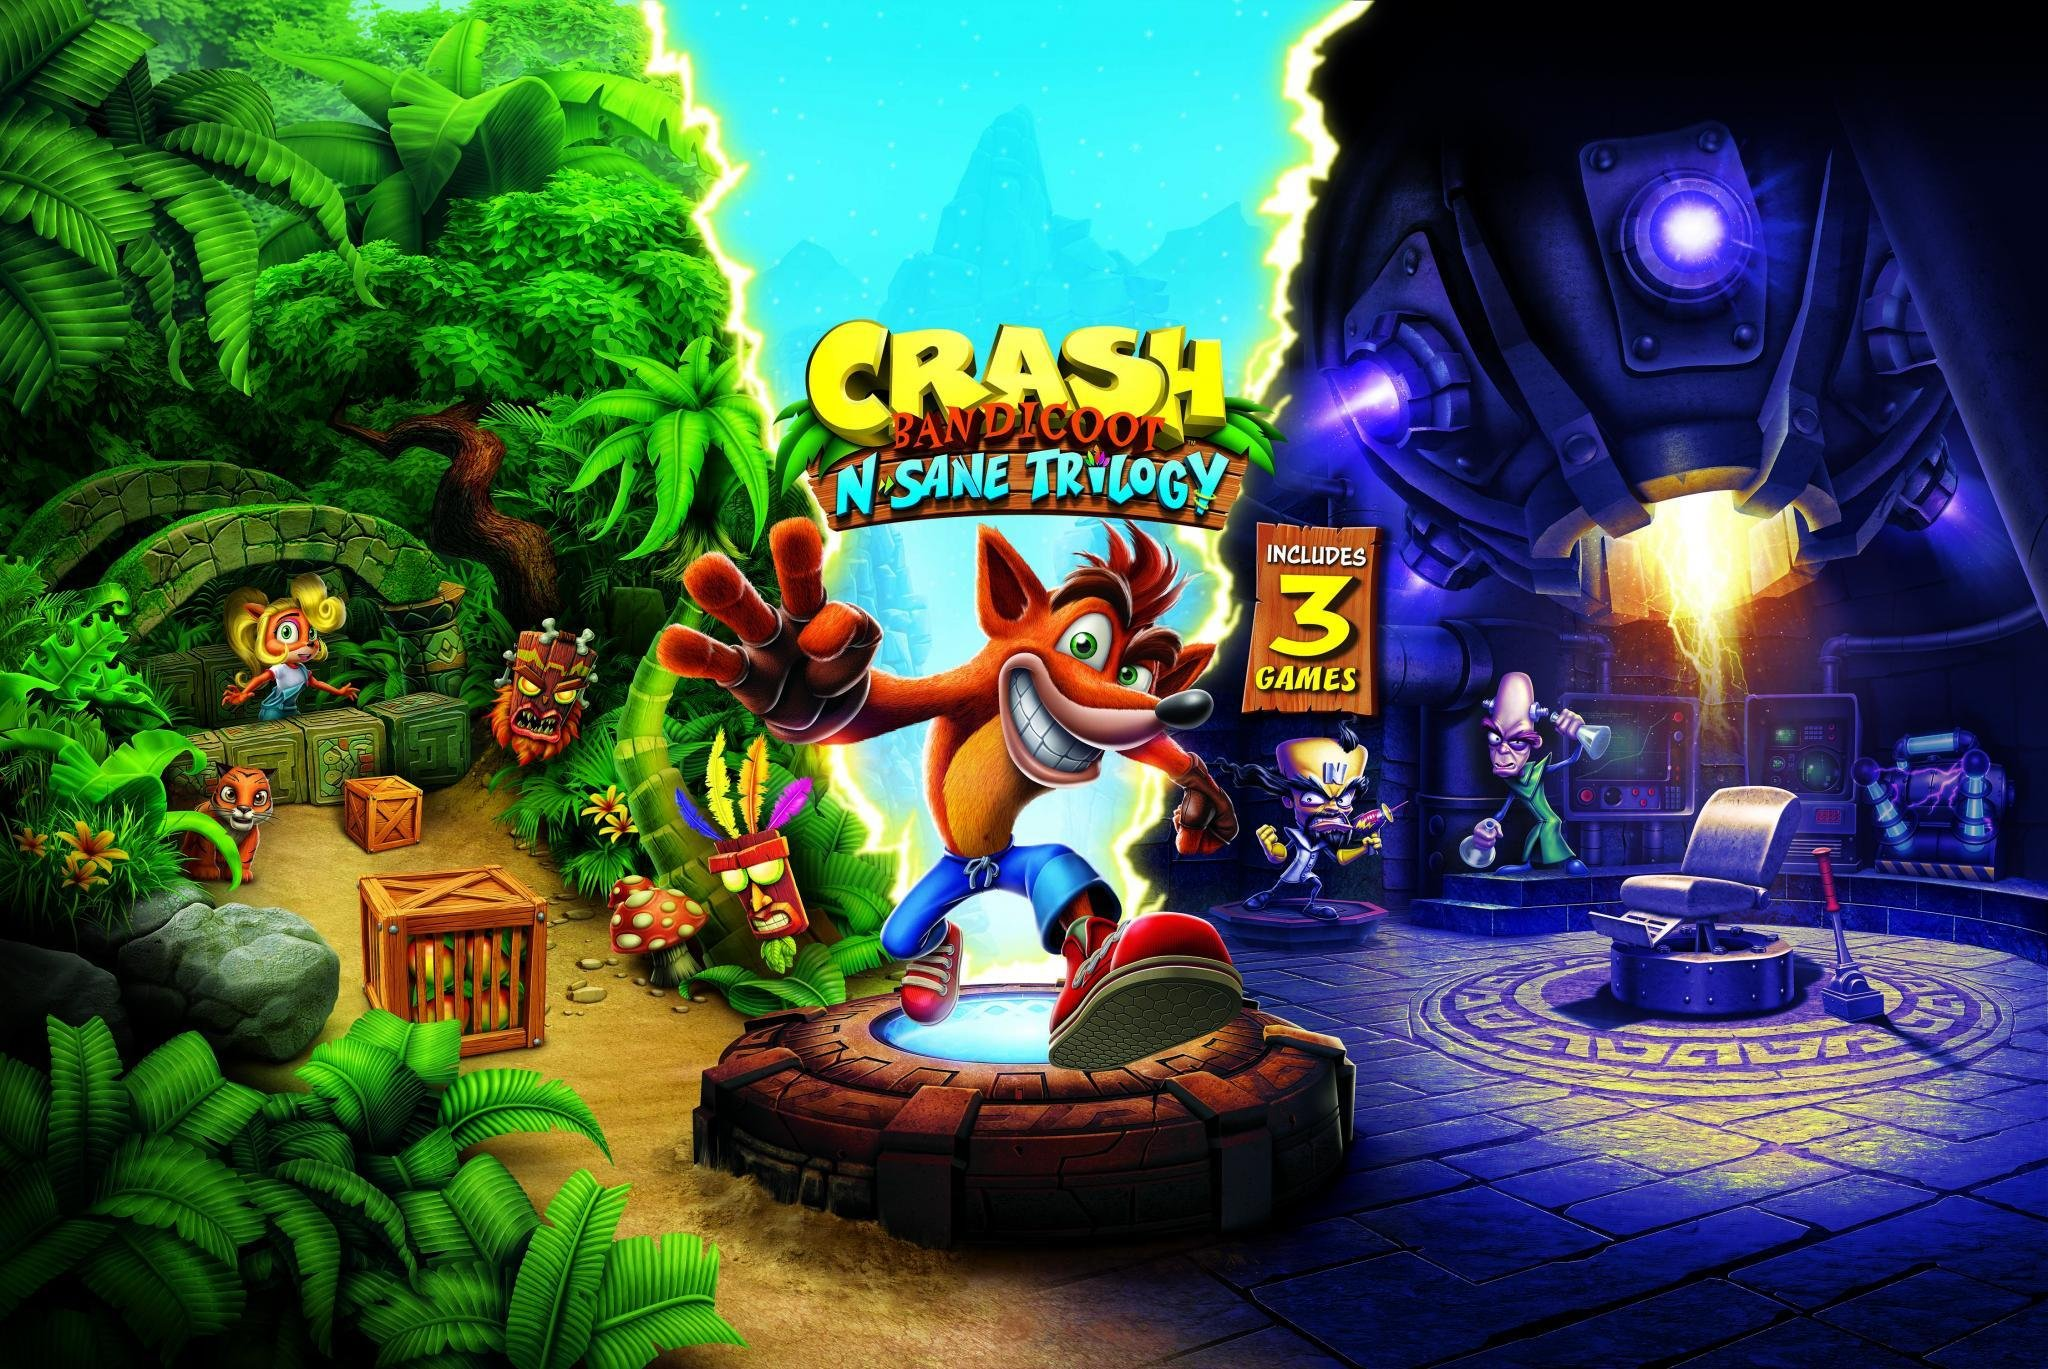 Crash Bandicoot N Sane Trilogy for Nintendo Switch